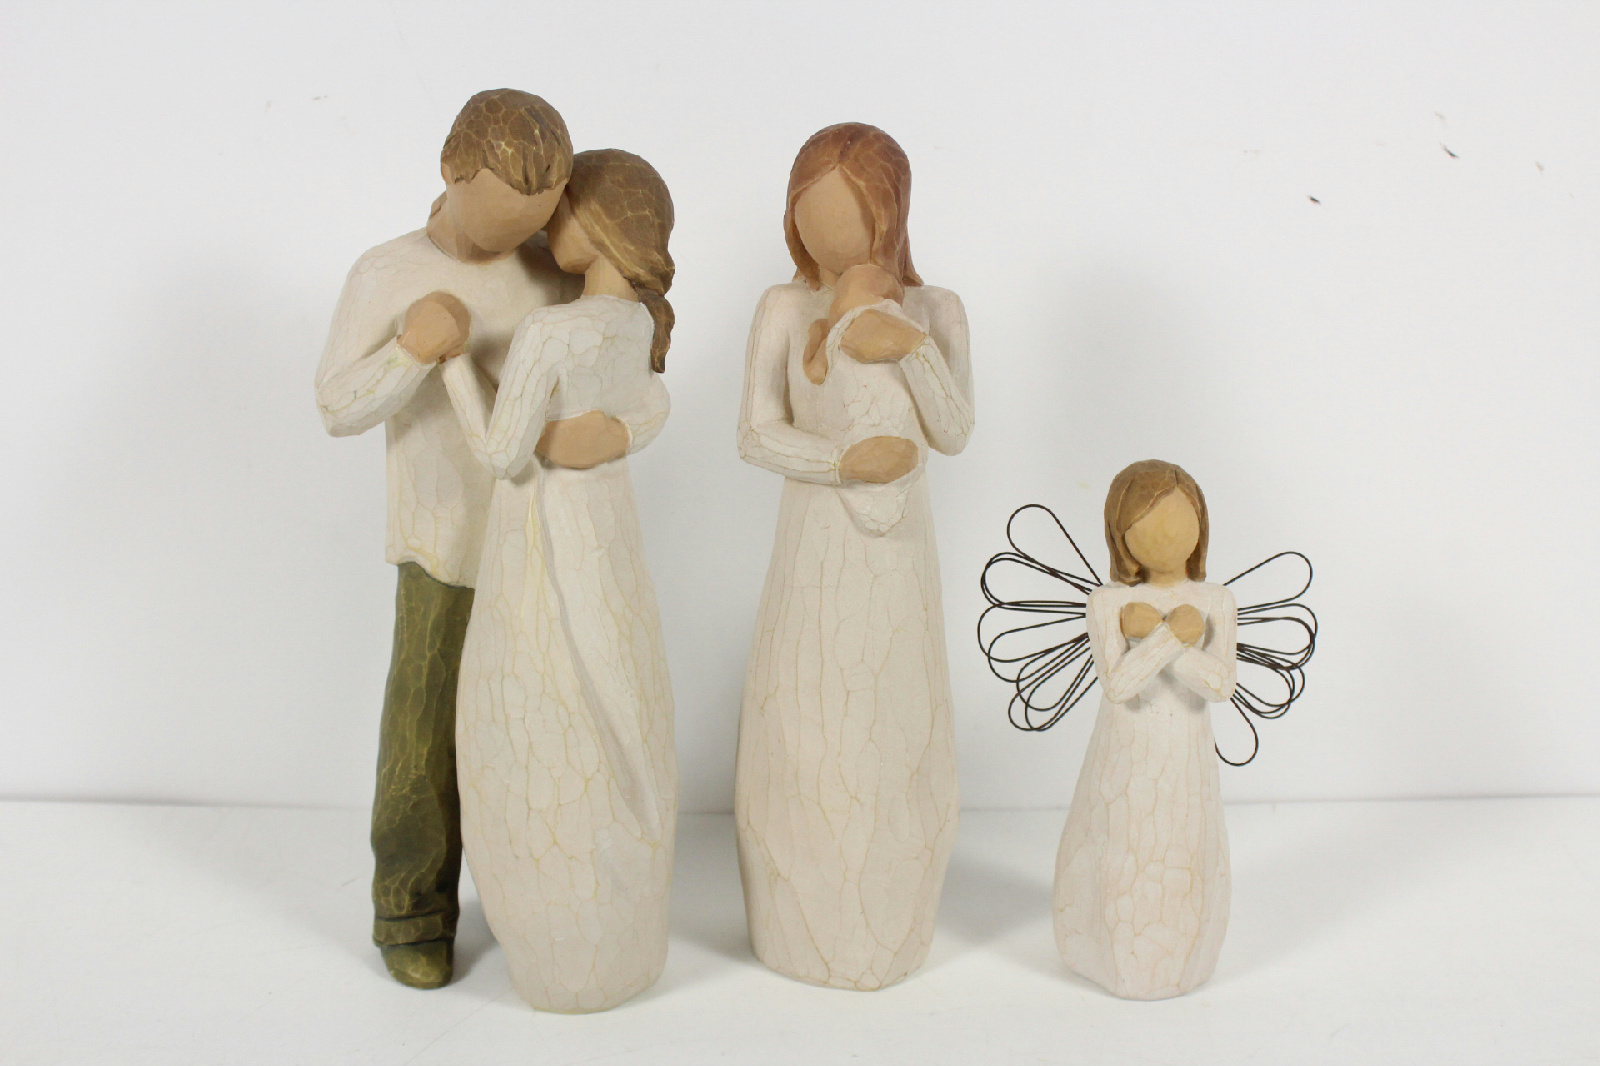 willow tree figurines susan lordi 3 pcs promise sign for. Black Bedroom Furniture Sets. Home Design Ideas